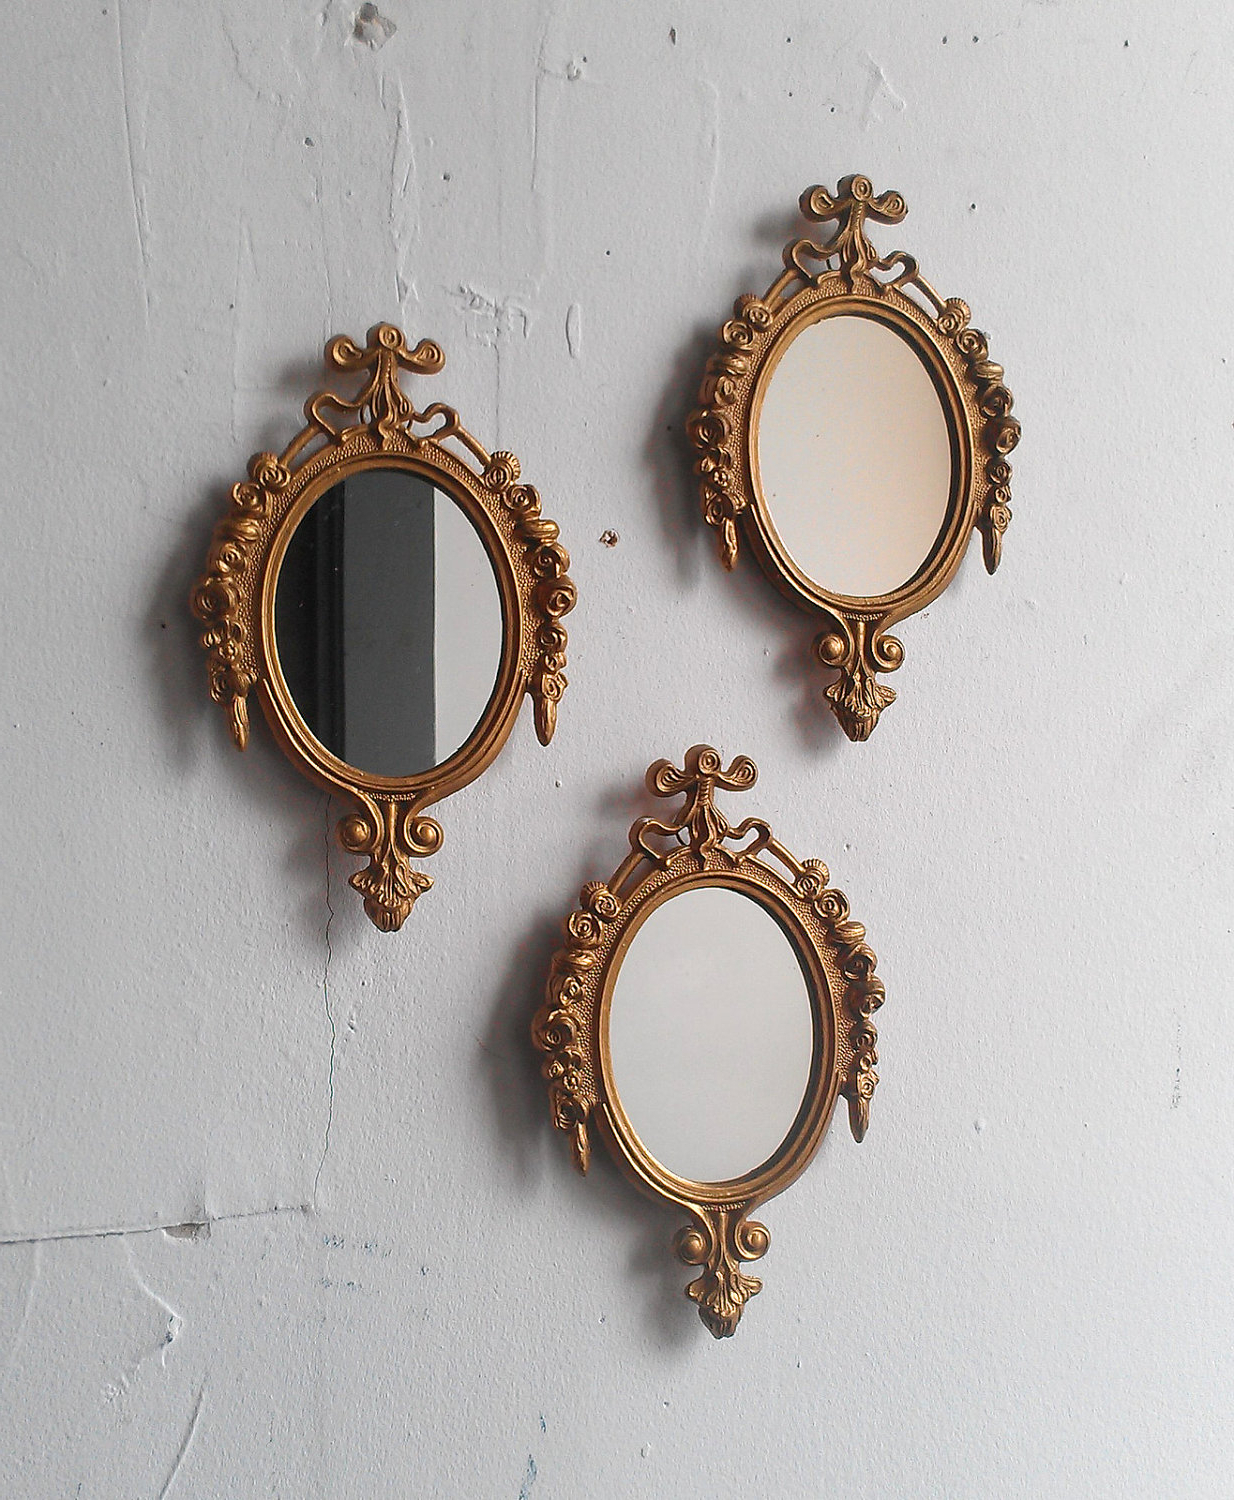 Latest Mesmerizing Small Decorative Wall Mirrors Also Cool Mirror Throughout Small Decorative Wall Mirror Sets (View 6 of 20)